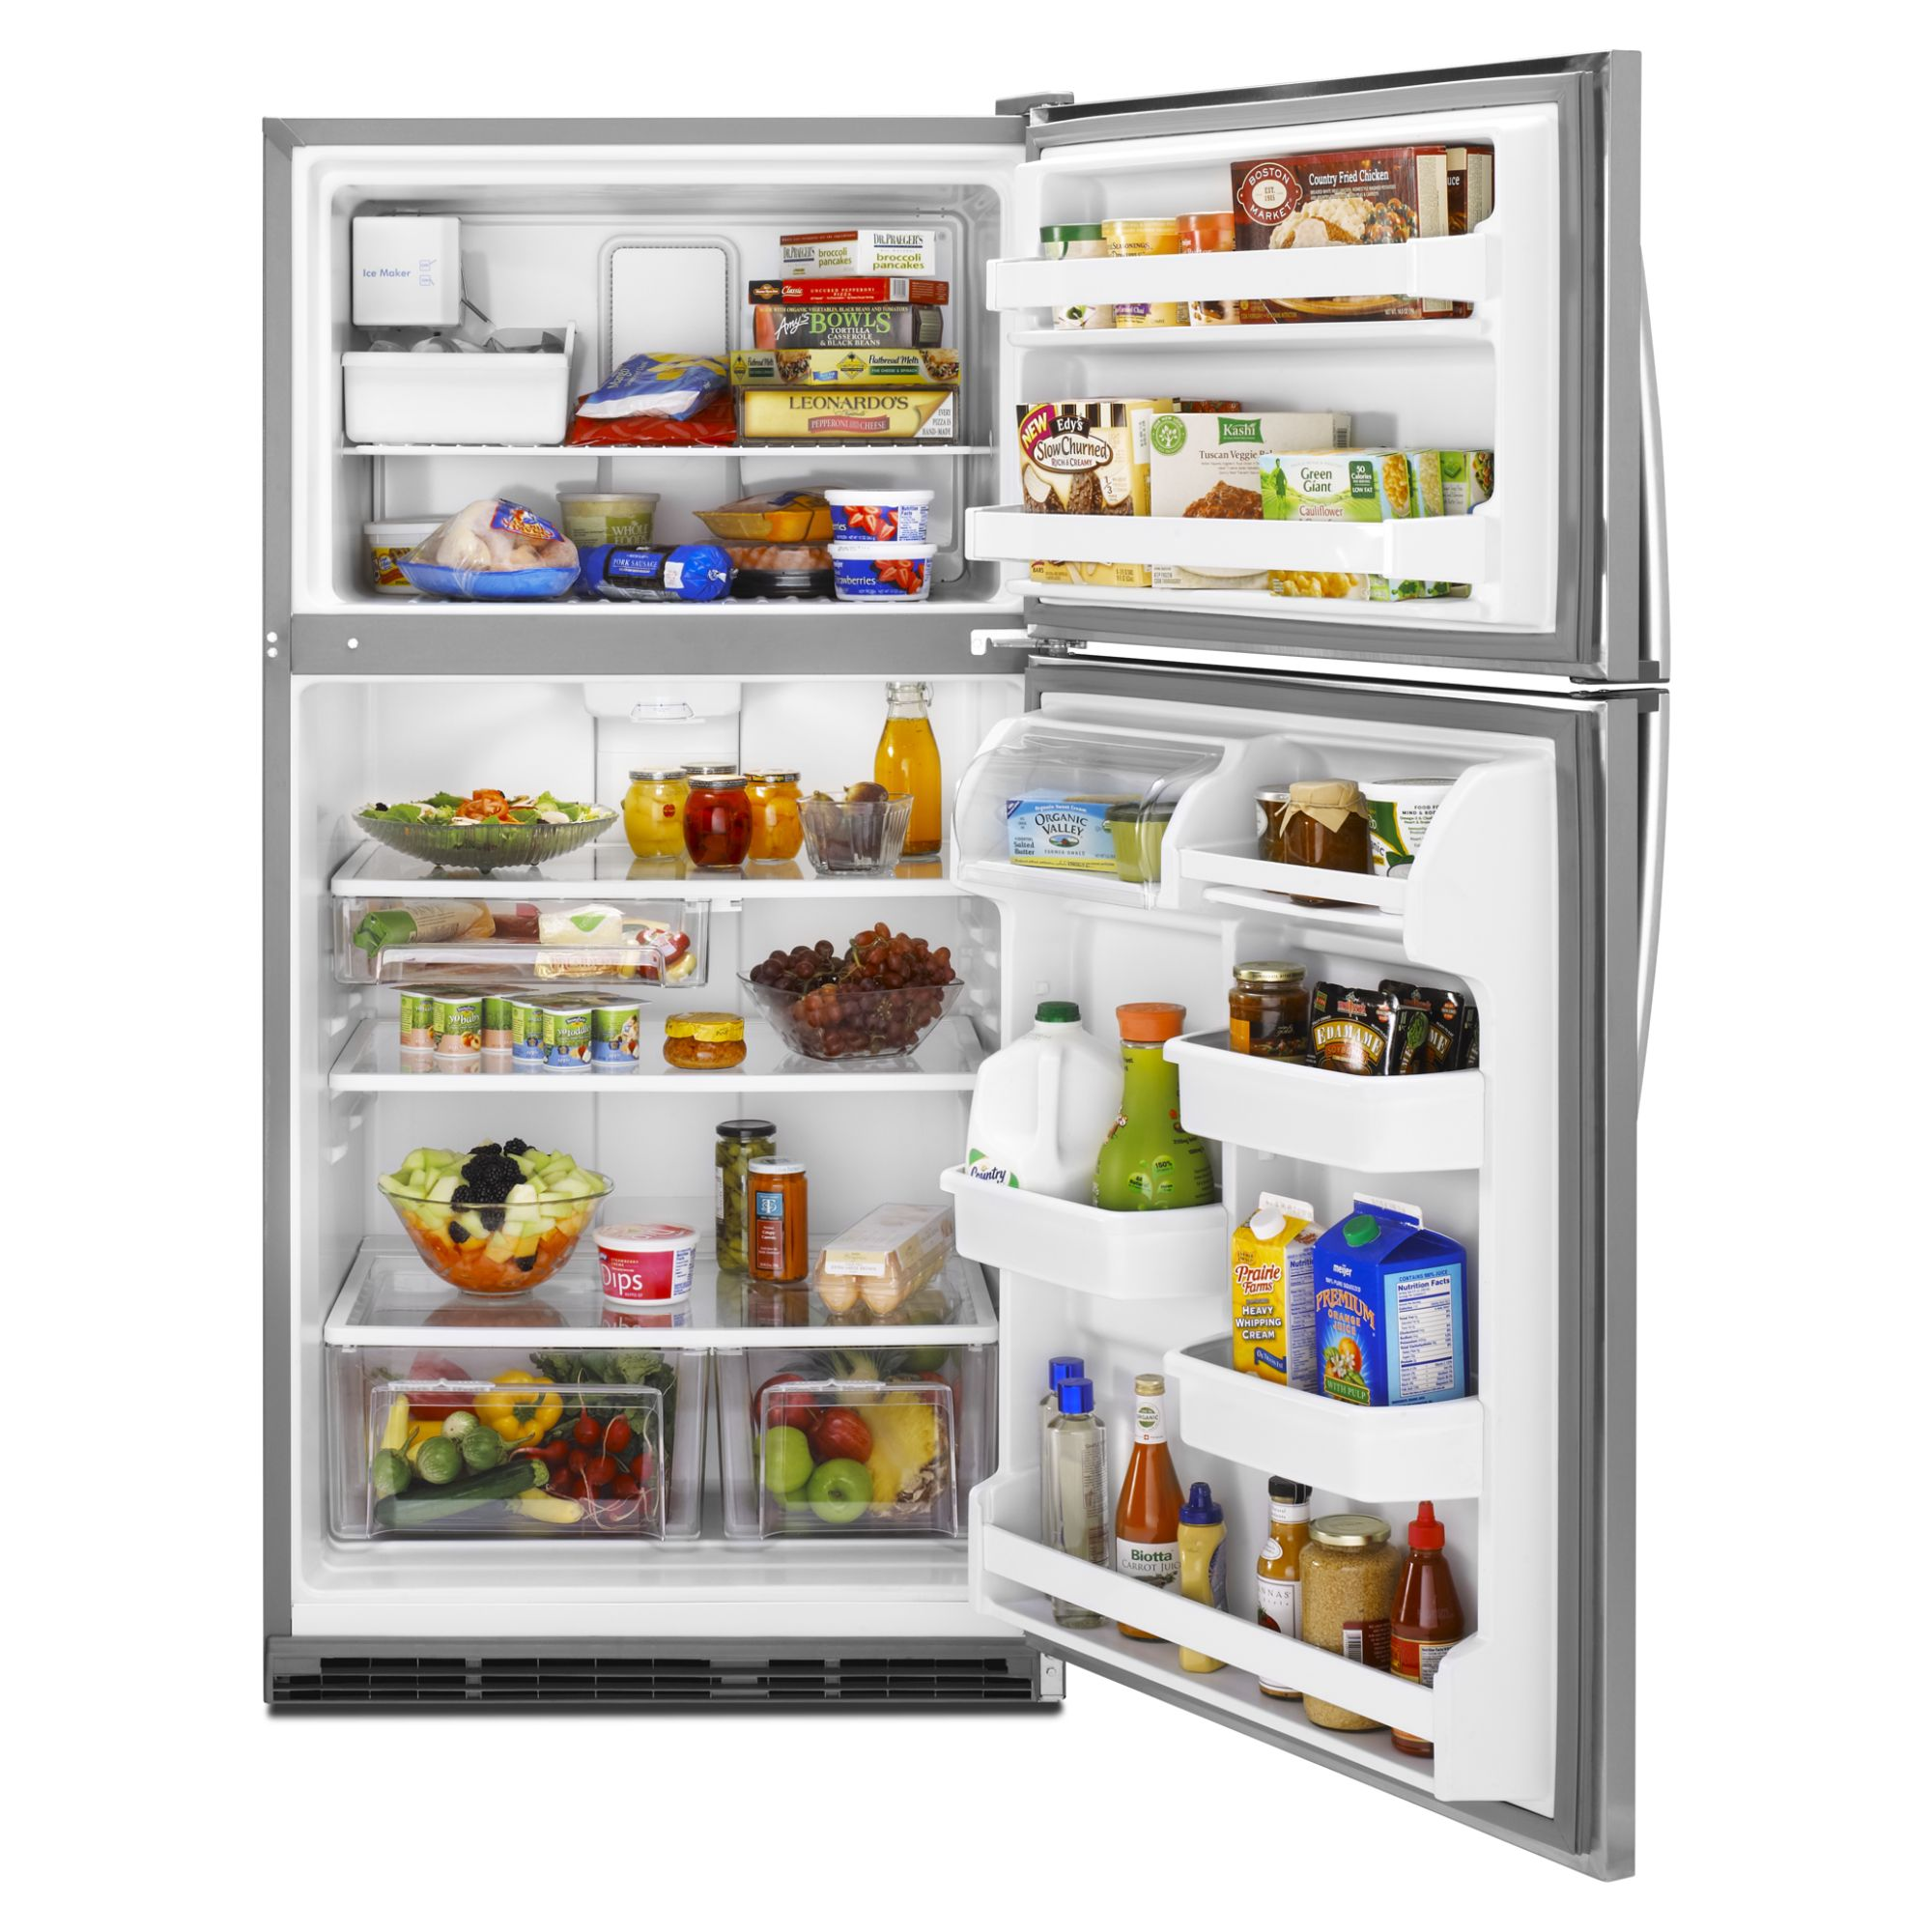 Kenmore 21.0 cu. ft. Top-Freezer Refrigerator w/ Ice Maker - Stainless Steel